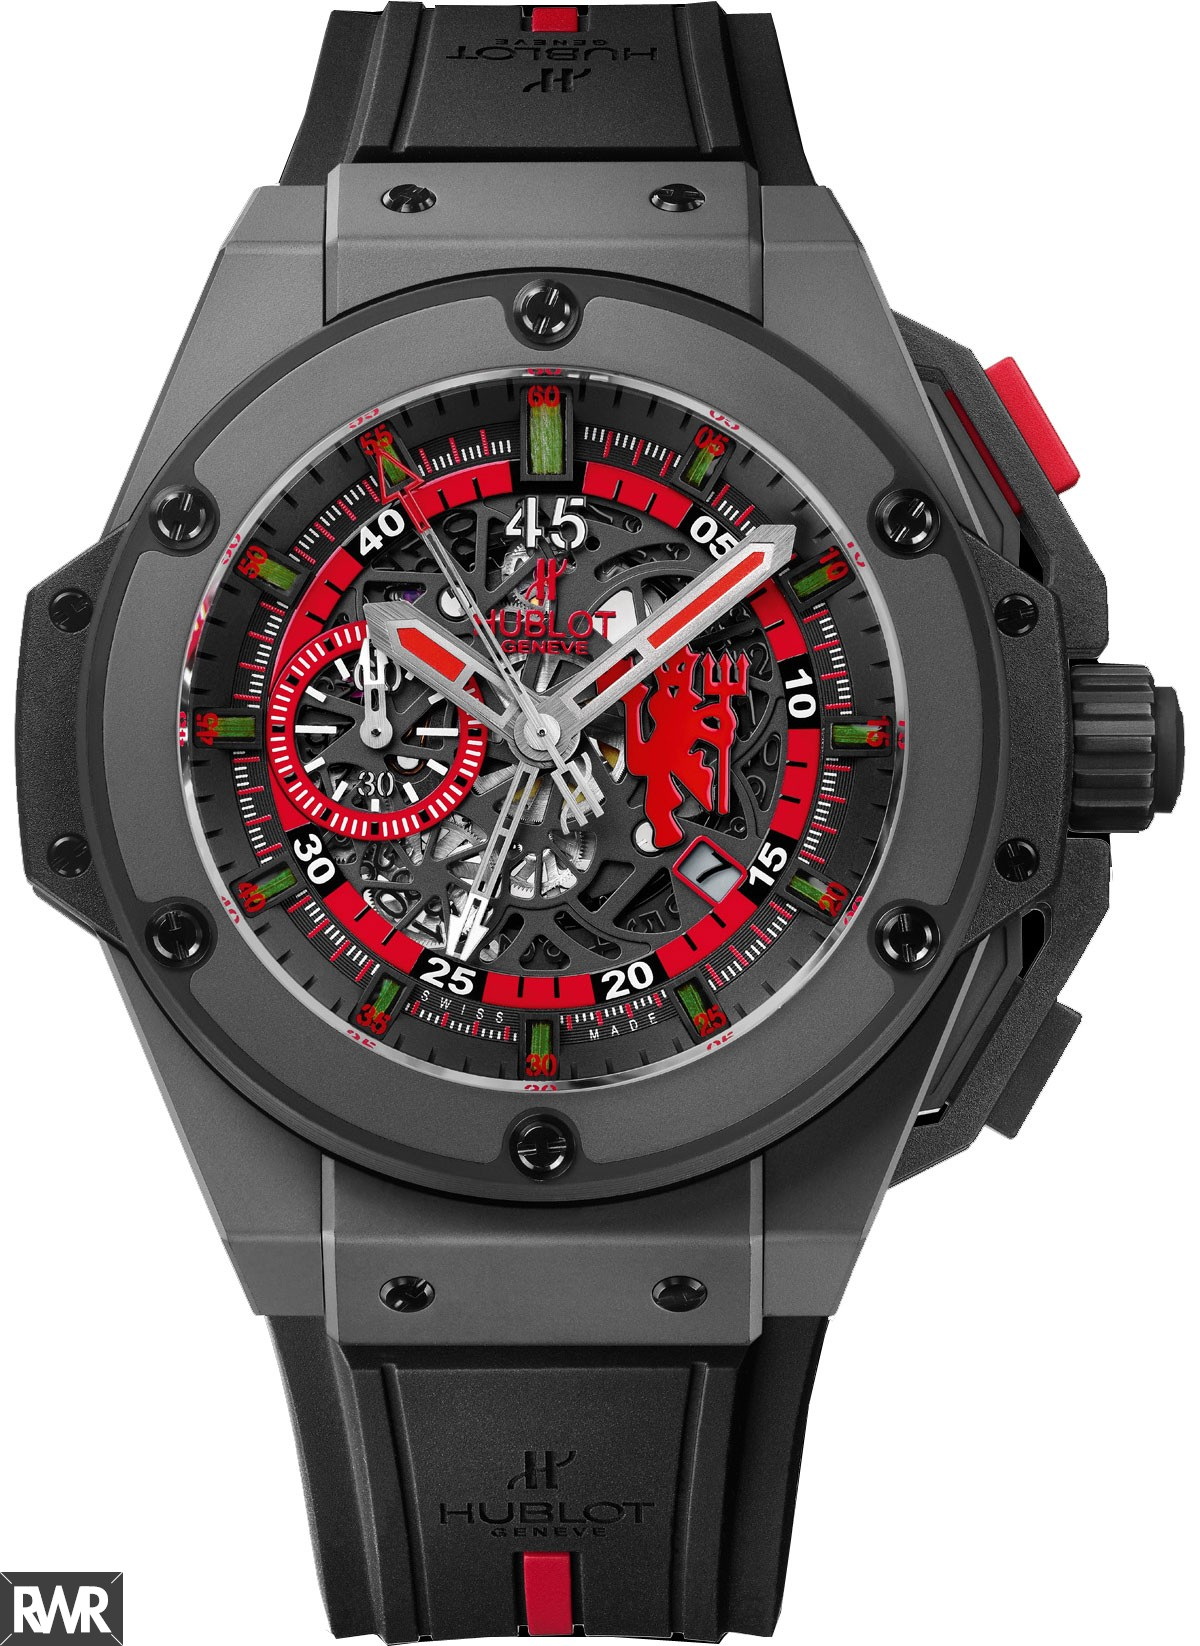 Hublot King Power Red Devil Chronograph 716.CI.1129.RX.MAN11 replica.